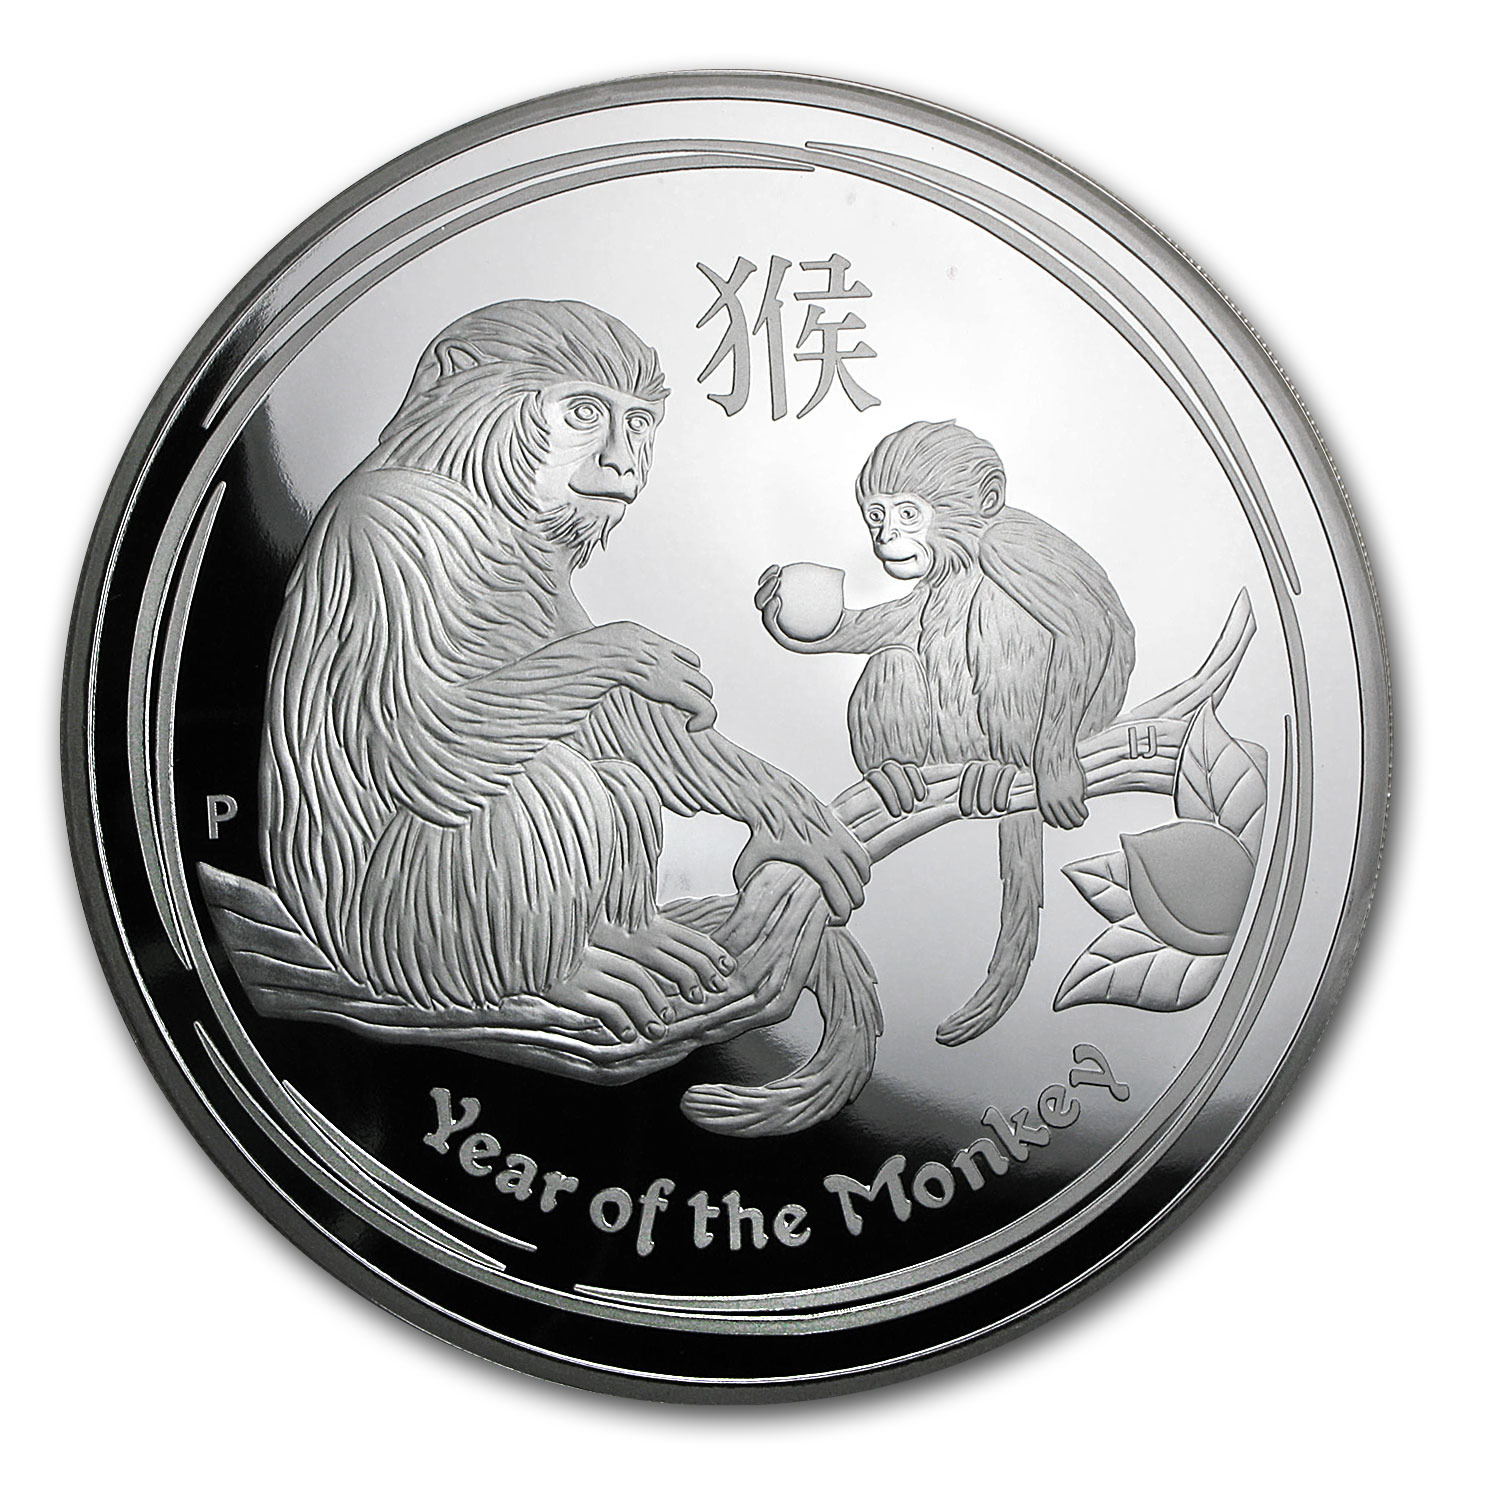 2016 Australia 1 kilo Silver Lunar Monkey Proof (Capsule Only)